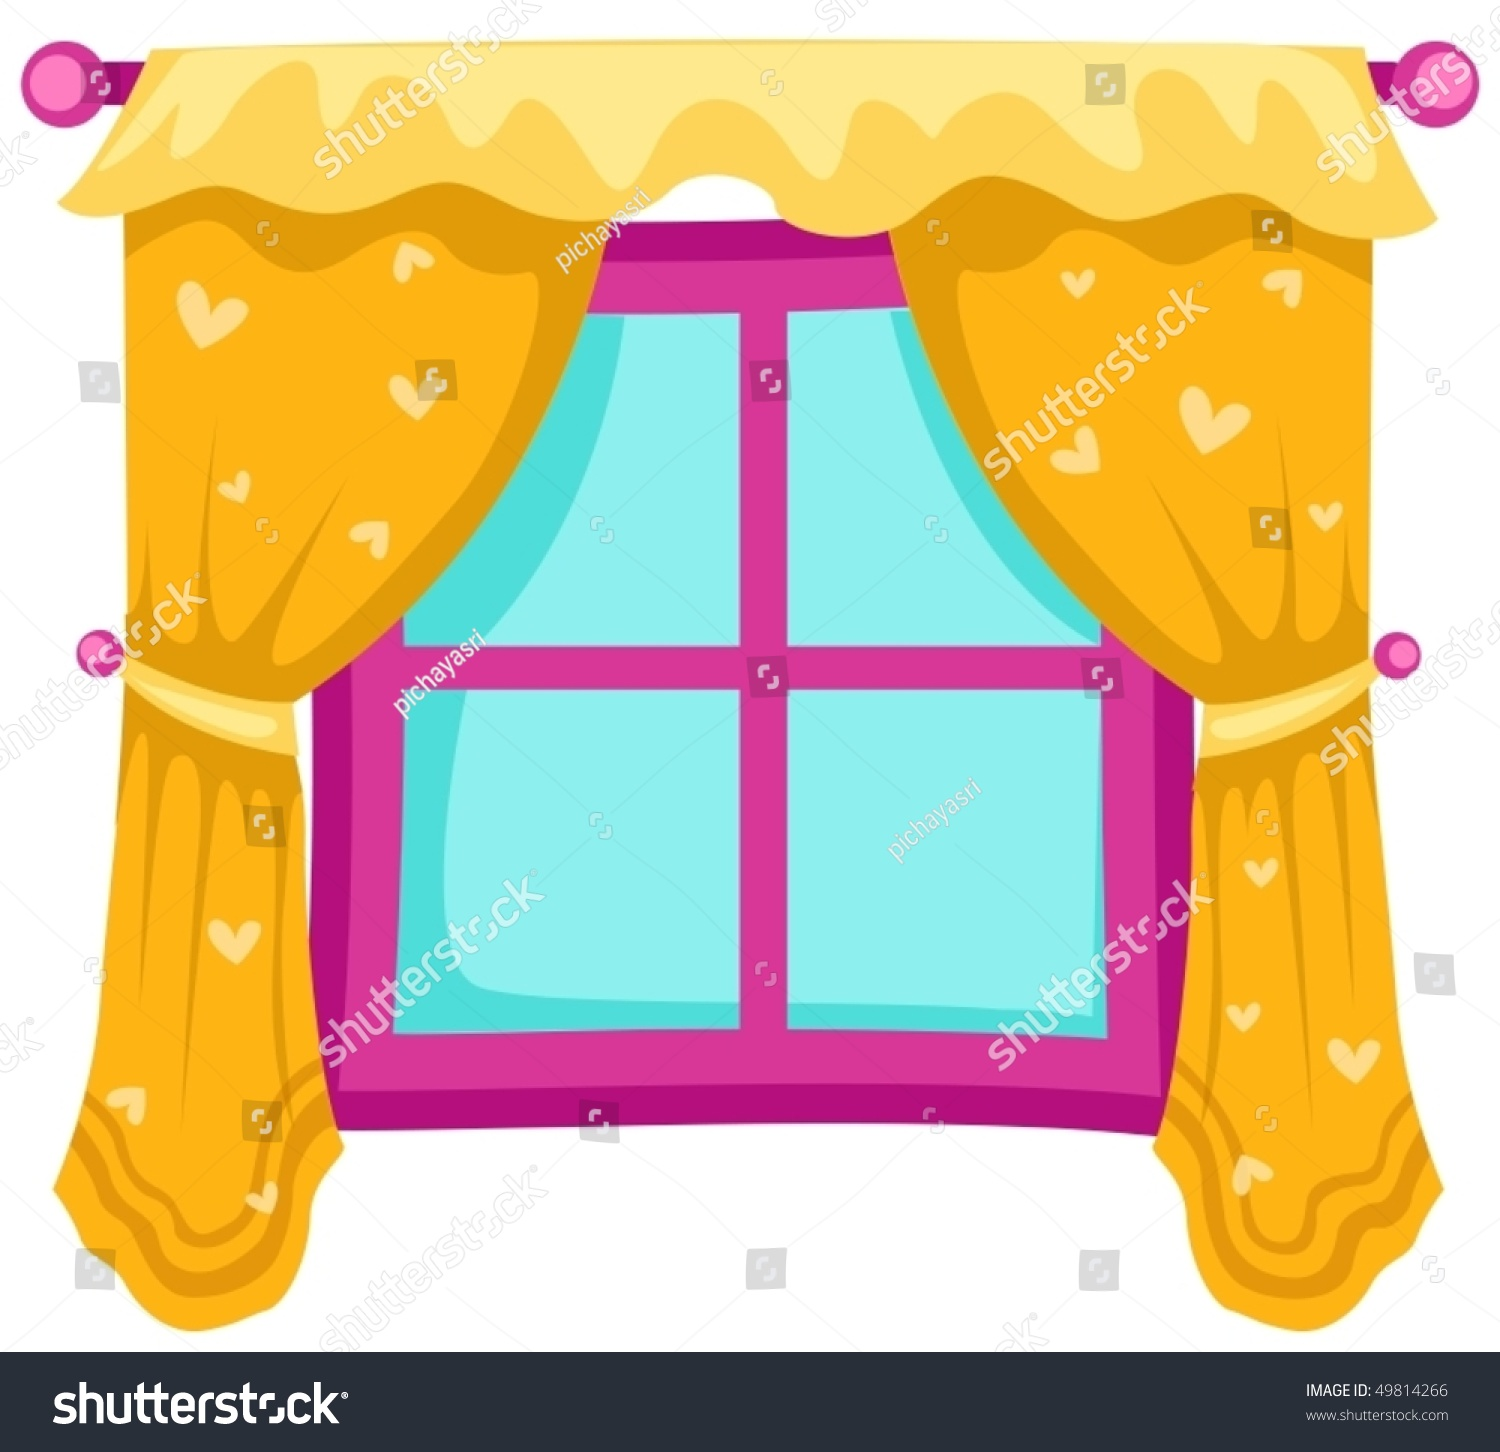 Illustration Isolated Closed Window Yellow Curtains Stock Vector ... for Window With Curtains Illustration  66pct